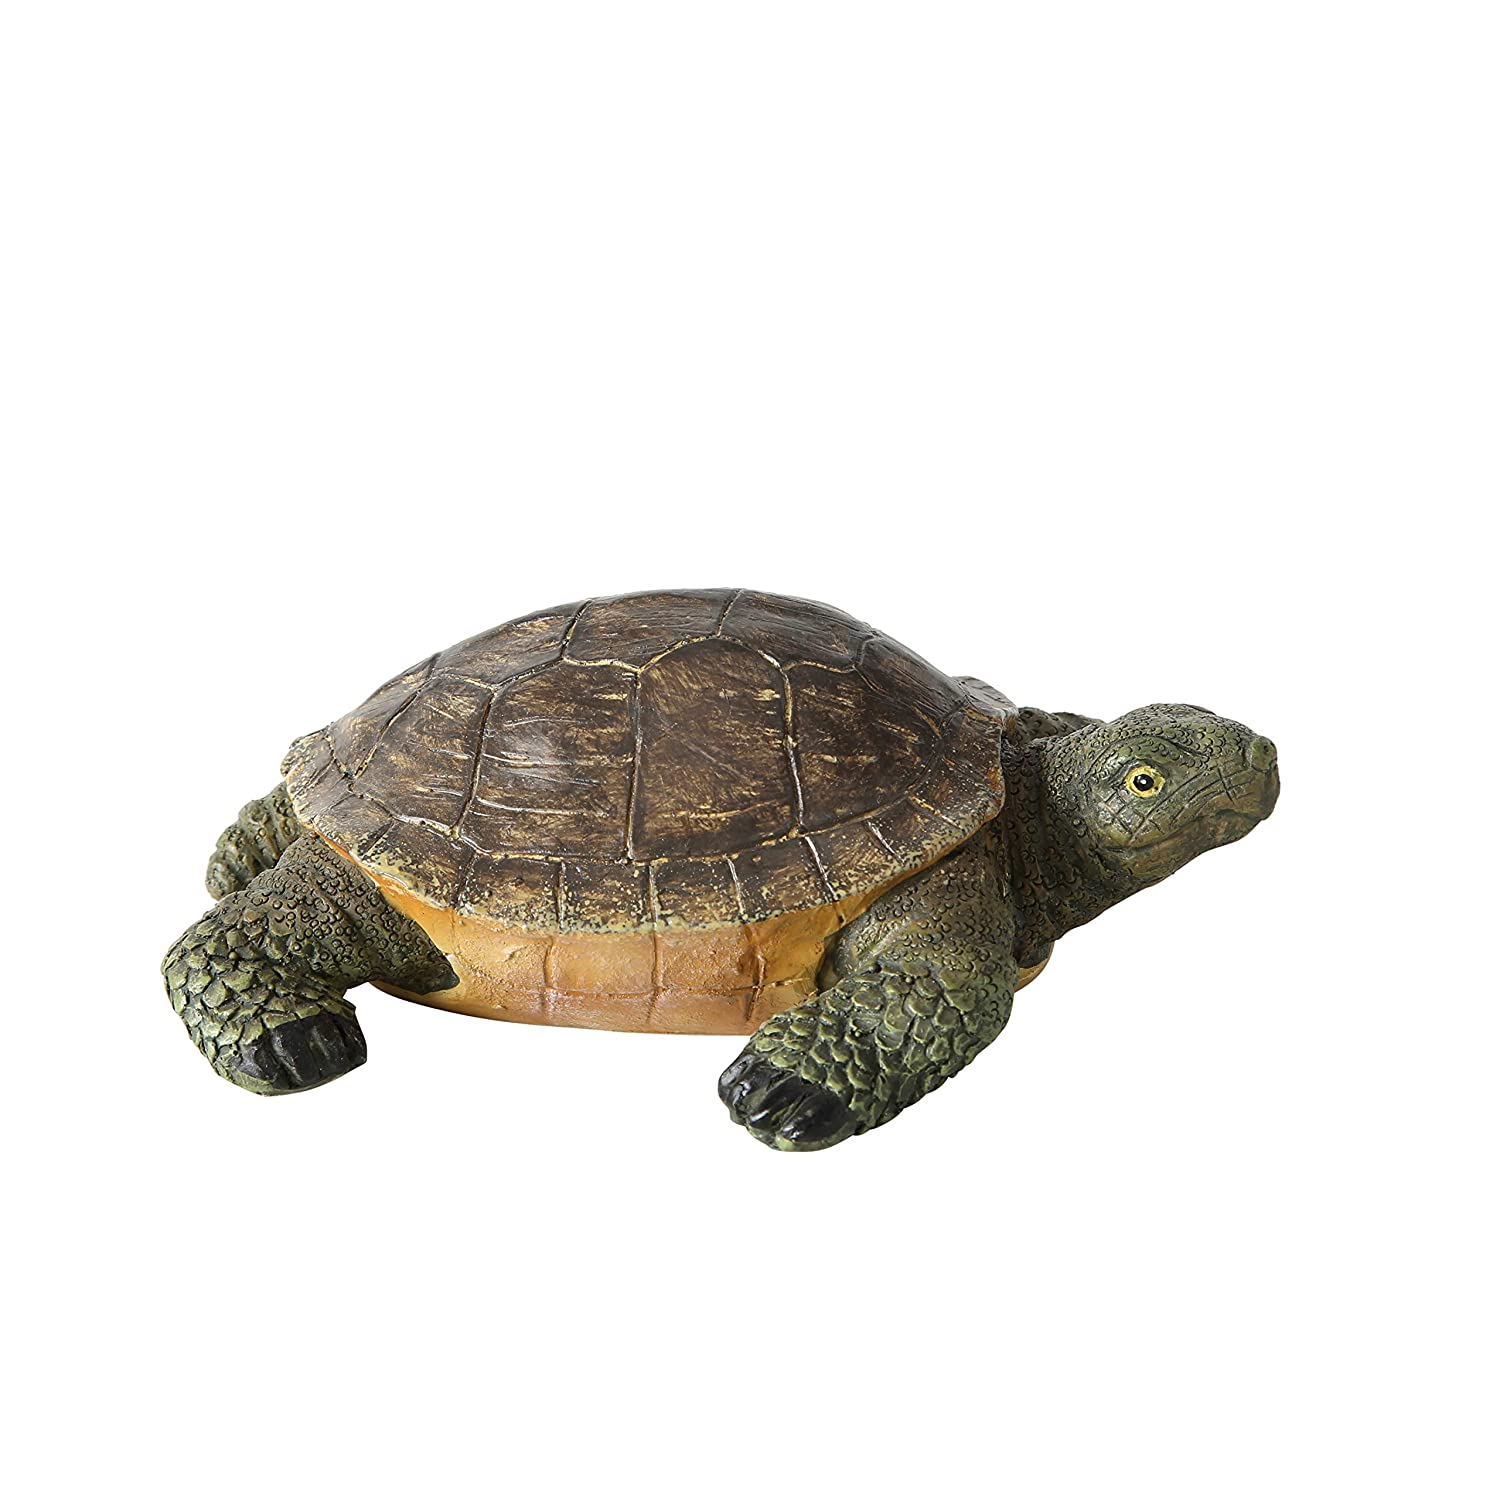 Whw Whole House Worlds Baby Toby Turtle Ultra Realistic Outdoor Garden Tortoise Statue Hand Sculpted Cast Poly Resin Weather Resistant 5 1 2 L X 4 1 4 W X 2 H Inches Amazon In Garden Outdoors